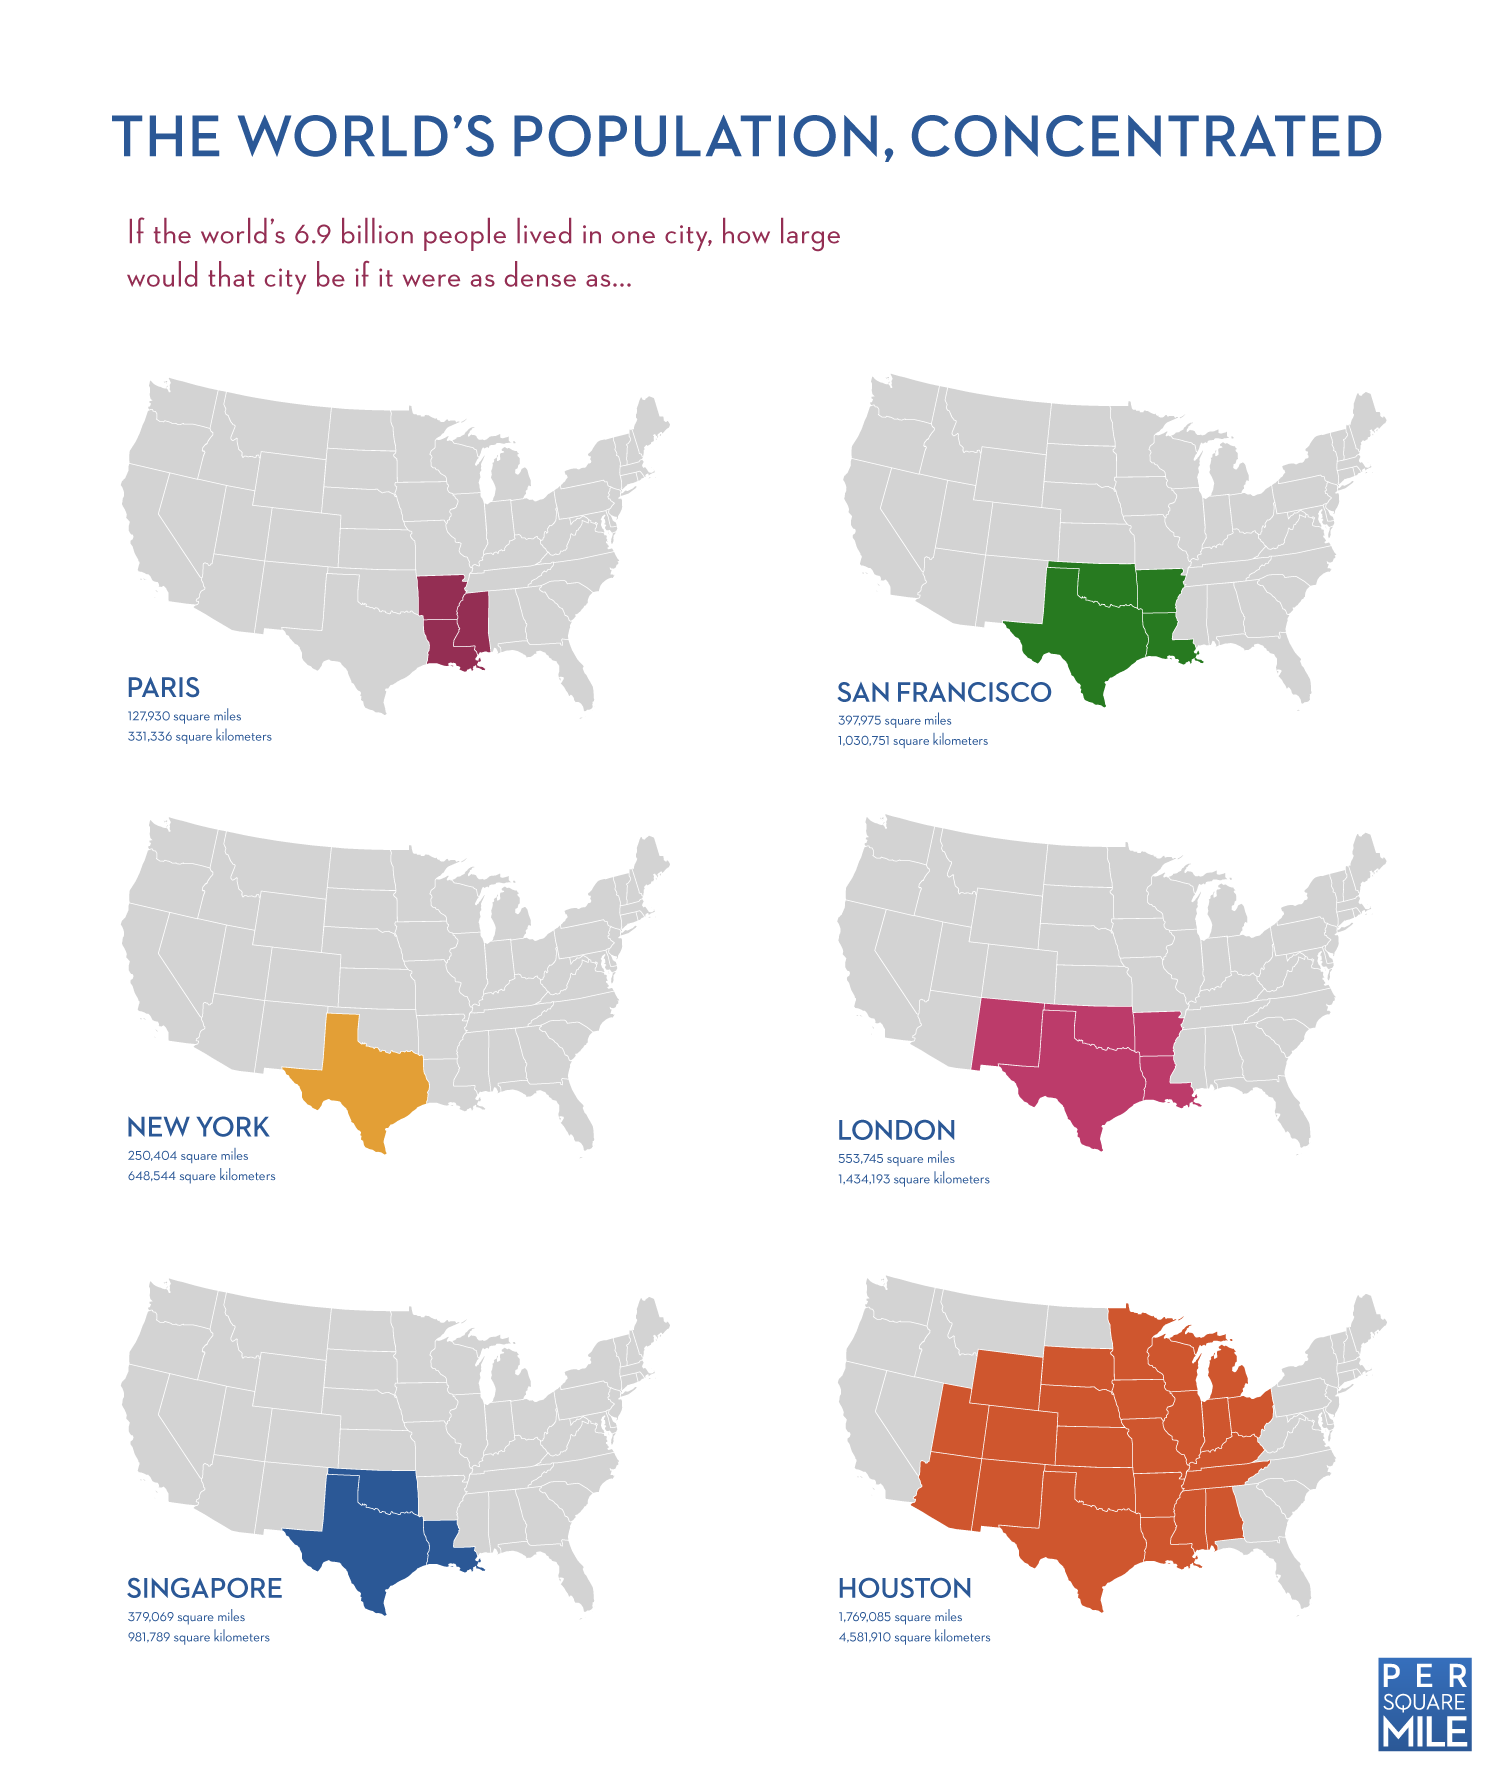 The world population in 1 city